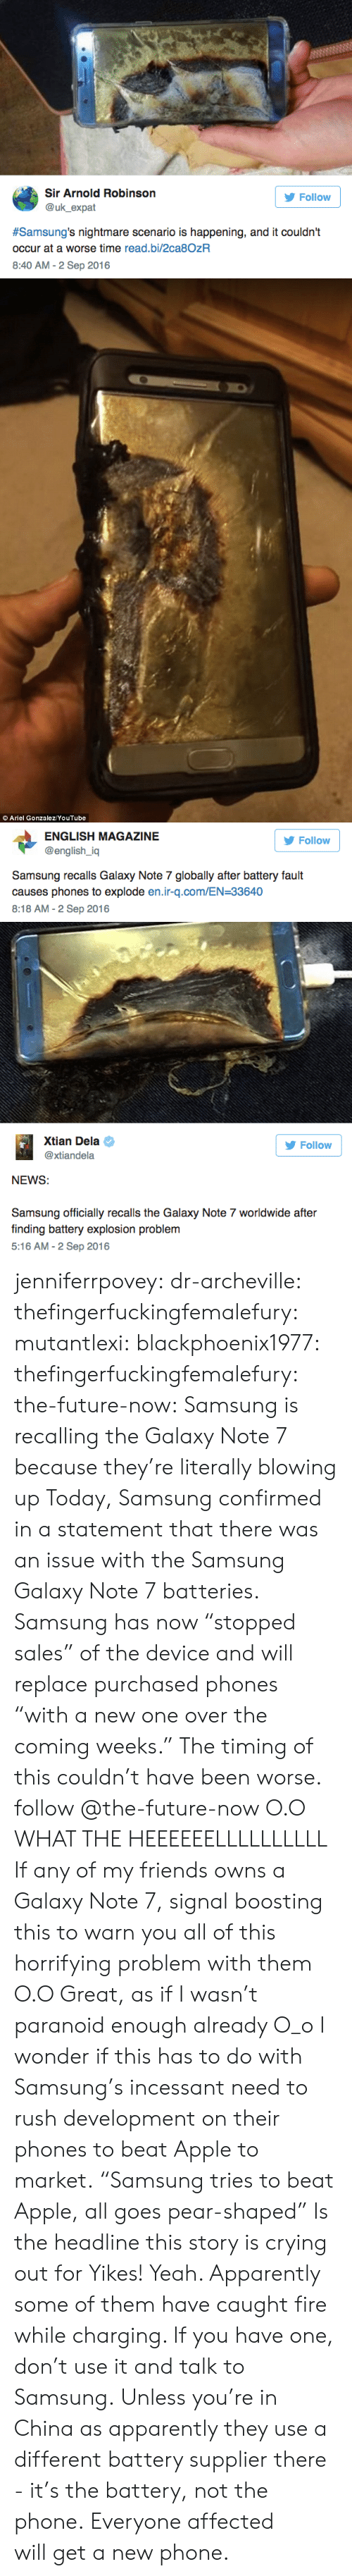 """Apparently, Apple, and Ariel: Sir Arnold Robinson  Follow  @uk_expat  #Samsung's nightmare scenario is happening, and it couldn't  occur at a worse time read.bi/2ca8OzR  8:40 AM -2 Sep 2016   Ariel Gonzalez/YouTube   ENGLISH MAGAZINE  Follow  @english_iq  Samsung recalls Galaxy Note 7 globally after battery fault  causes phones to explode en.ir-q.com/EN-33640  8:18 AM-2 Sep 2016   Xtian Dela  Follow  @xtiandela  NEWS:  Samsung officially recalls the Galaxy Note 7 worldwide after  finding battery explosion problem  5:16 AM-2 Sep 2016 jenniferrpovey:  dr-archeville:  thefingerfuckingfemalefury:  mutantlexi:  blackphoenix1977:  thefingerfuckingfemalefury:  the-future-now:  Samsung is recalling the Galaxy Note 7 because they're literally blowing up Today, Samsung confirmed in a statement that  there was an issue with the Samsung Galaxy Note 7 batteries.  Samsung has now """"stopped sales"""" of the device and will replace purchased  phones """"with a new one over the coming weeks."""" The timing of this couldn't have been worse. follow @the-future-now  O.O WHAT THE HEEEEEELLLLLLLLLL If any of my friends owns a Galaxy Note 7, signal boosting this to warn you all of this horrifying problem with them O.O  Great, as if I wasn't paranoid enough already O_o  I wonder if this has to do with Samsung's incessant need to rush development on their phones to beat Apple to market.  """"Samsung tries to beat Apple, all goes pear-shaped"""" Is the headline this story is crying out for   Yikes!  Yeah. Apparently some of them have caught fire while charging. If you have one, don't use it and talk to Samsung. Unless you're in China as apparently they use a different battery supplier there - it's the battery, not the phone. Everyone affected willget a new phone."""